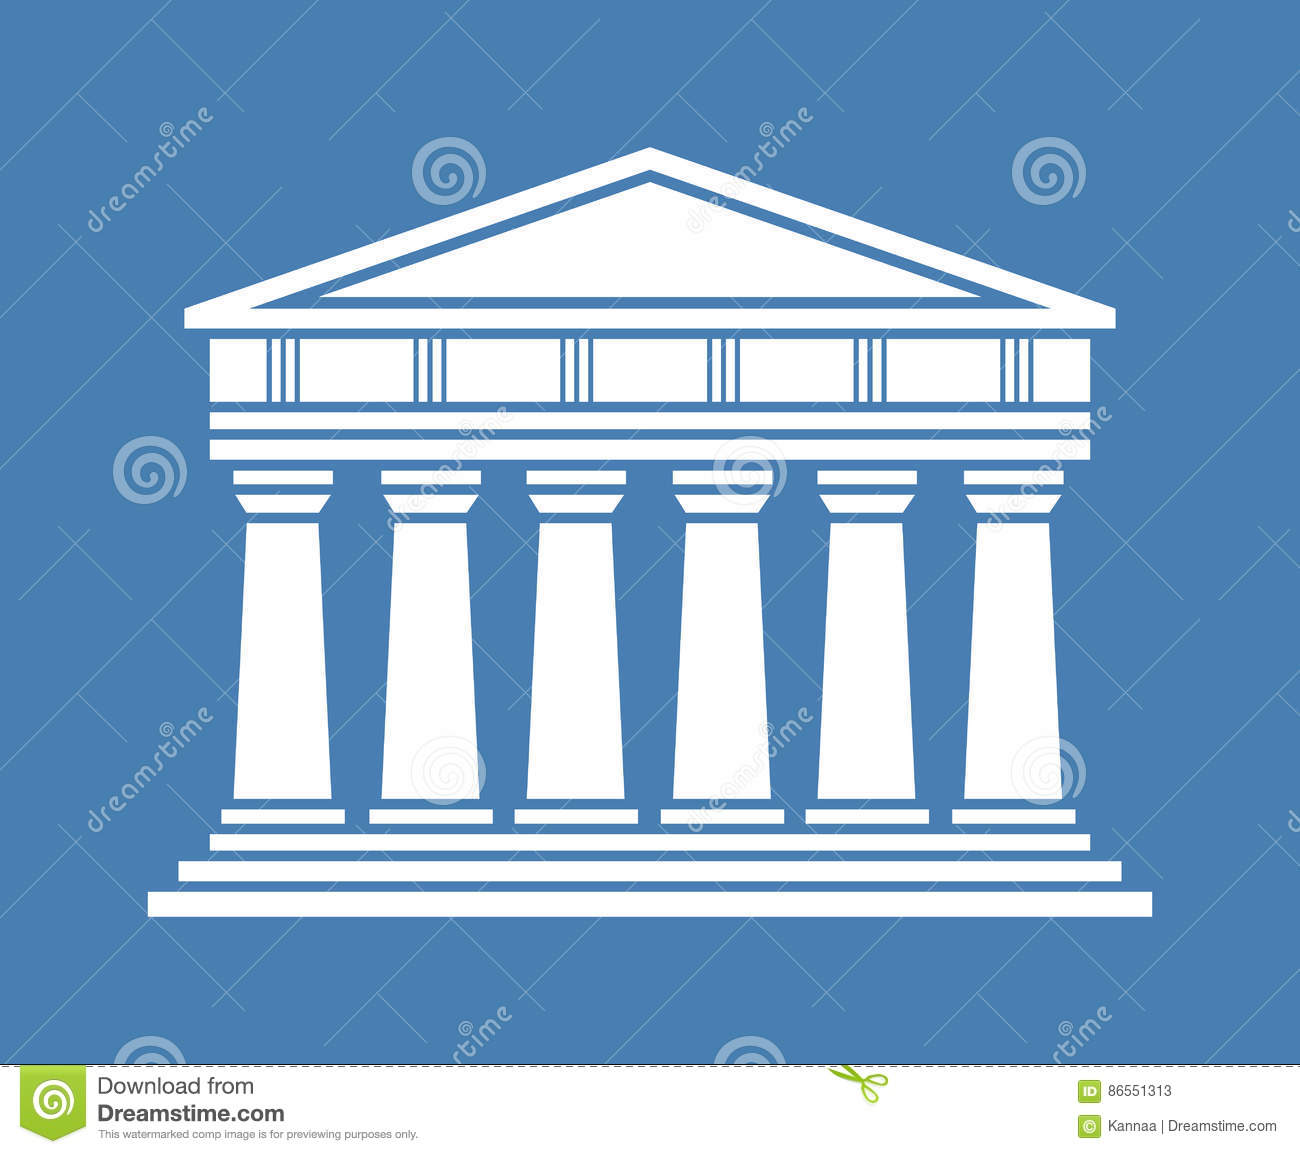 architecture greek temple icon stock vector - image: 86551313